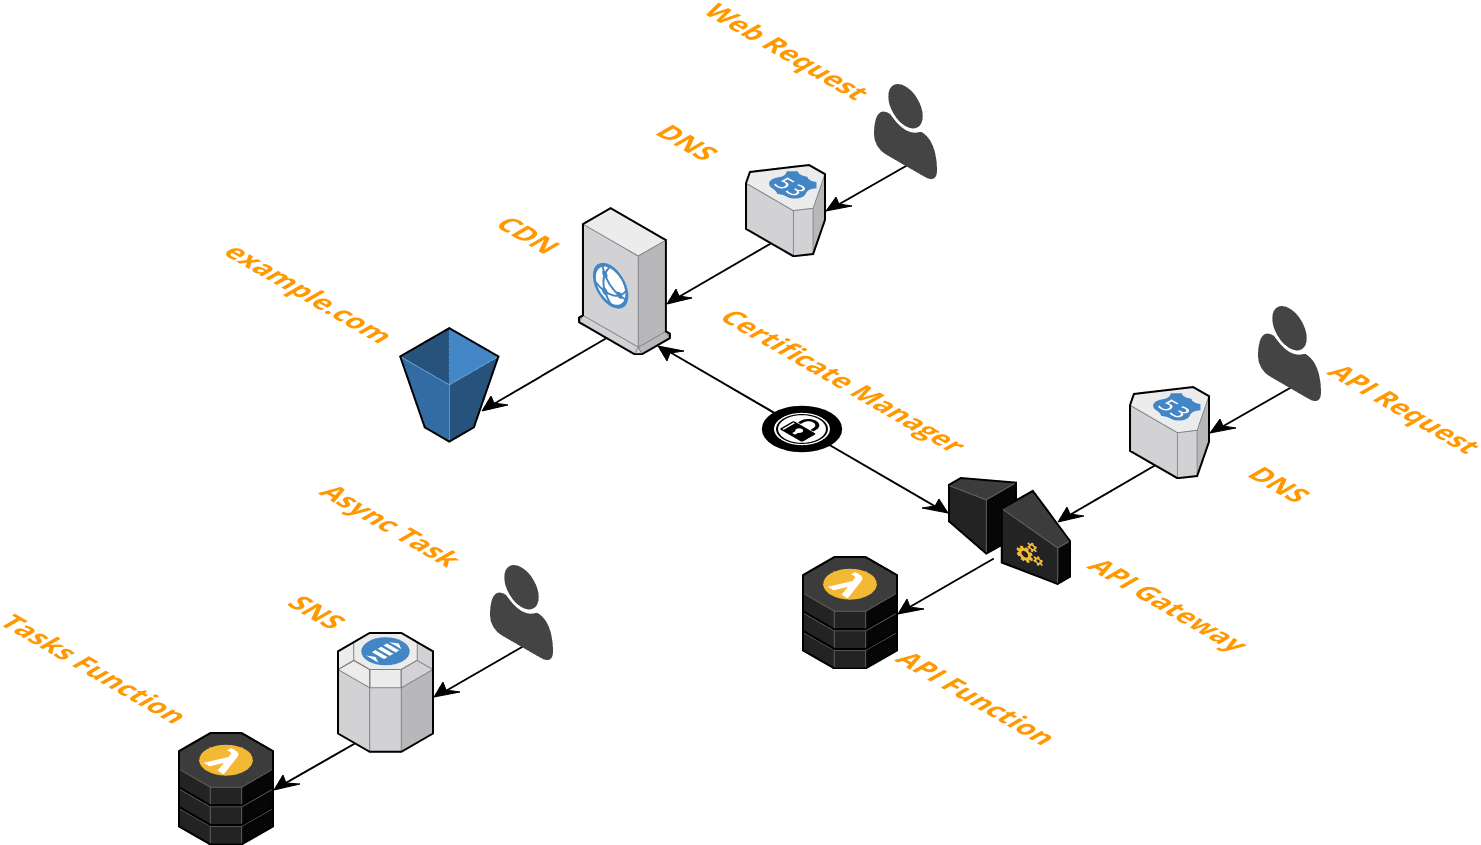 /the-serverless-stack-3ae91031f050 feature image